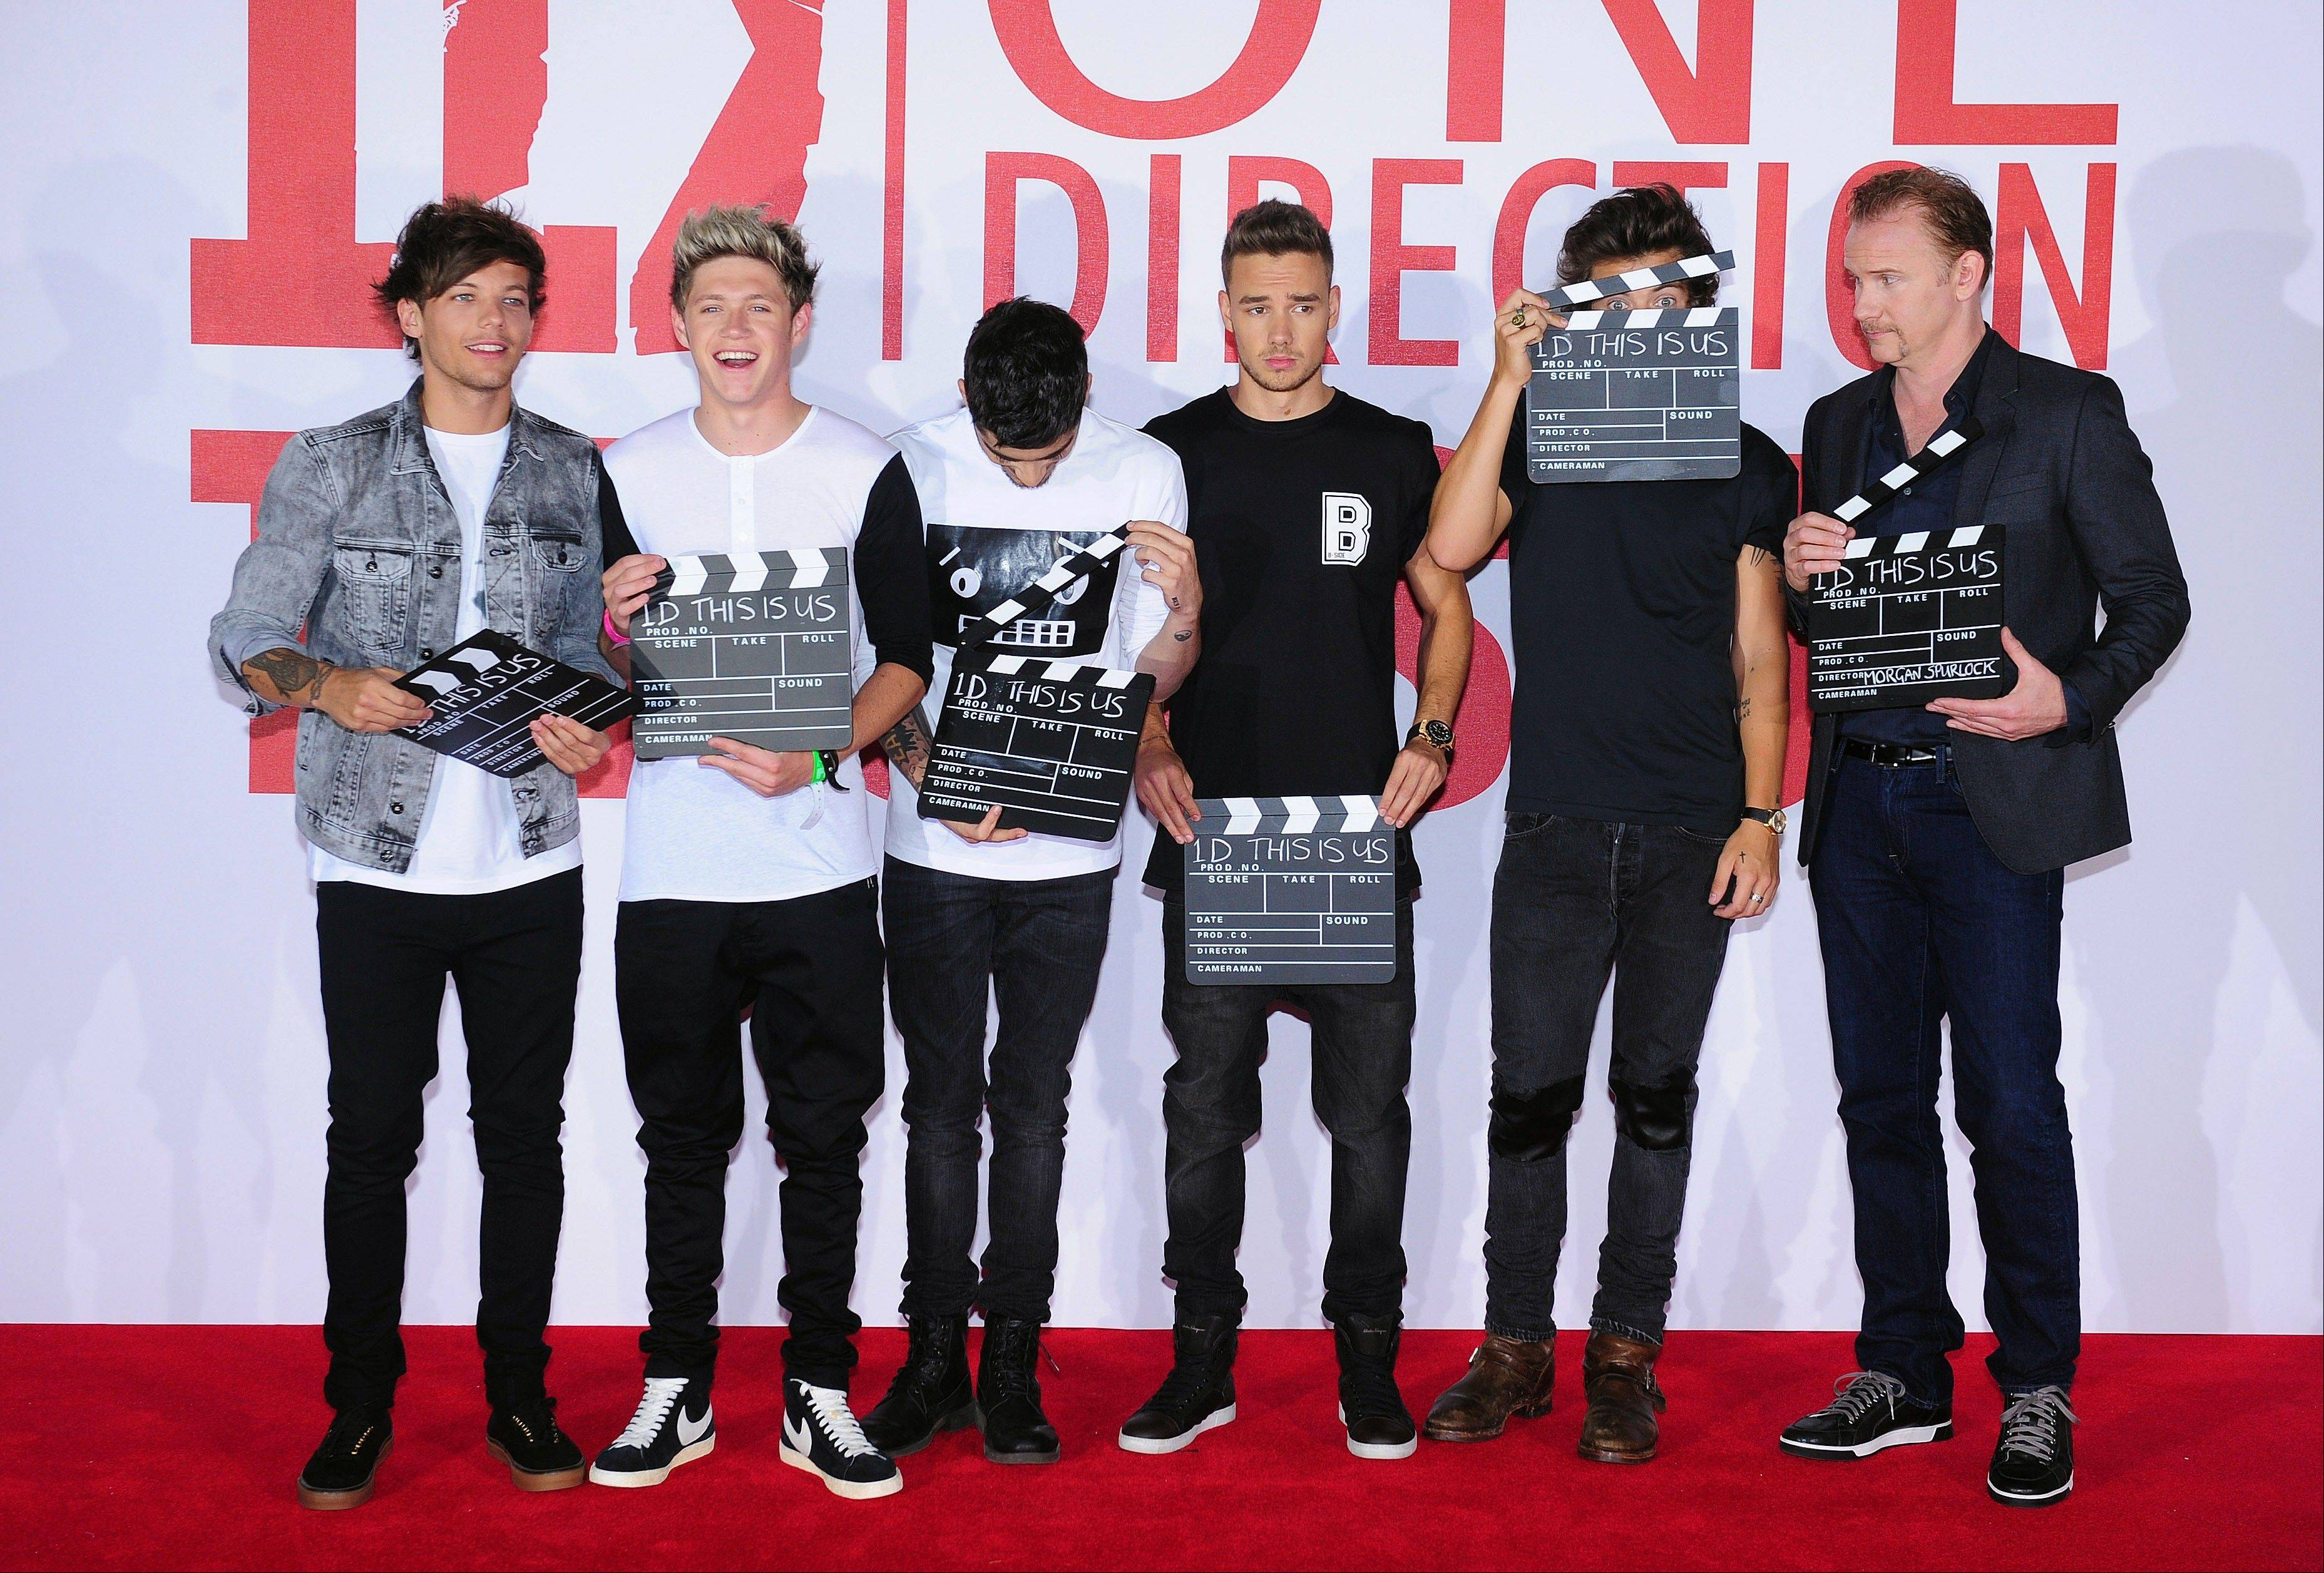 One Direction � Louis Tomlinson, left, Niall Horan, Zayn Malik, Liam Payne and Harry Styles � promote their new film, �This is Us,� with director Morgan Spurlock on Monday in London. The film is an intimate all-access look at life on the road for the global music phenomenon.